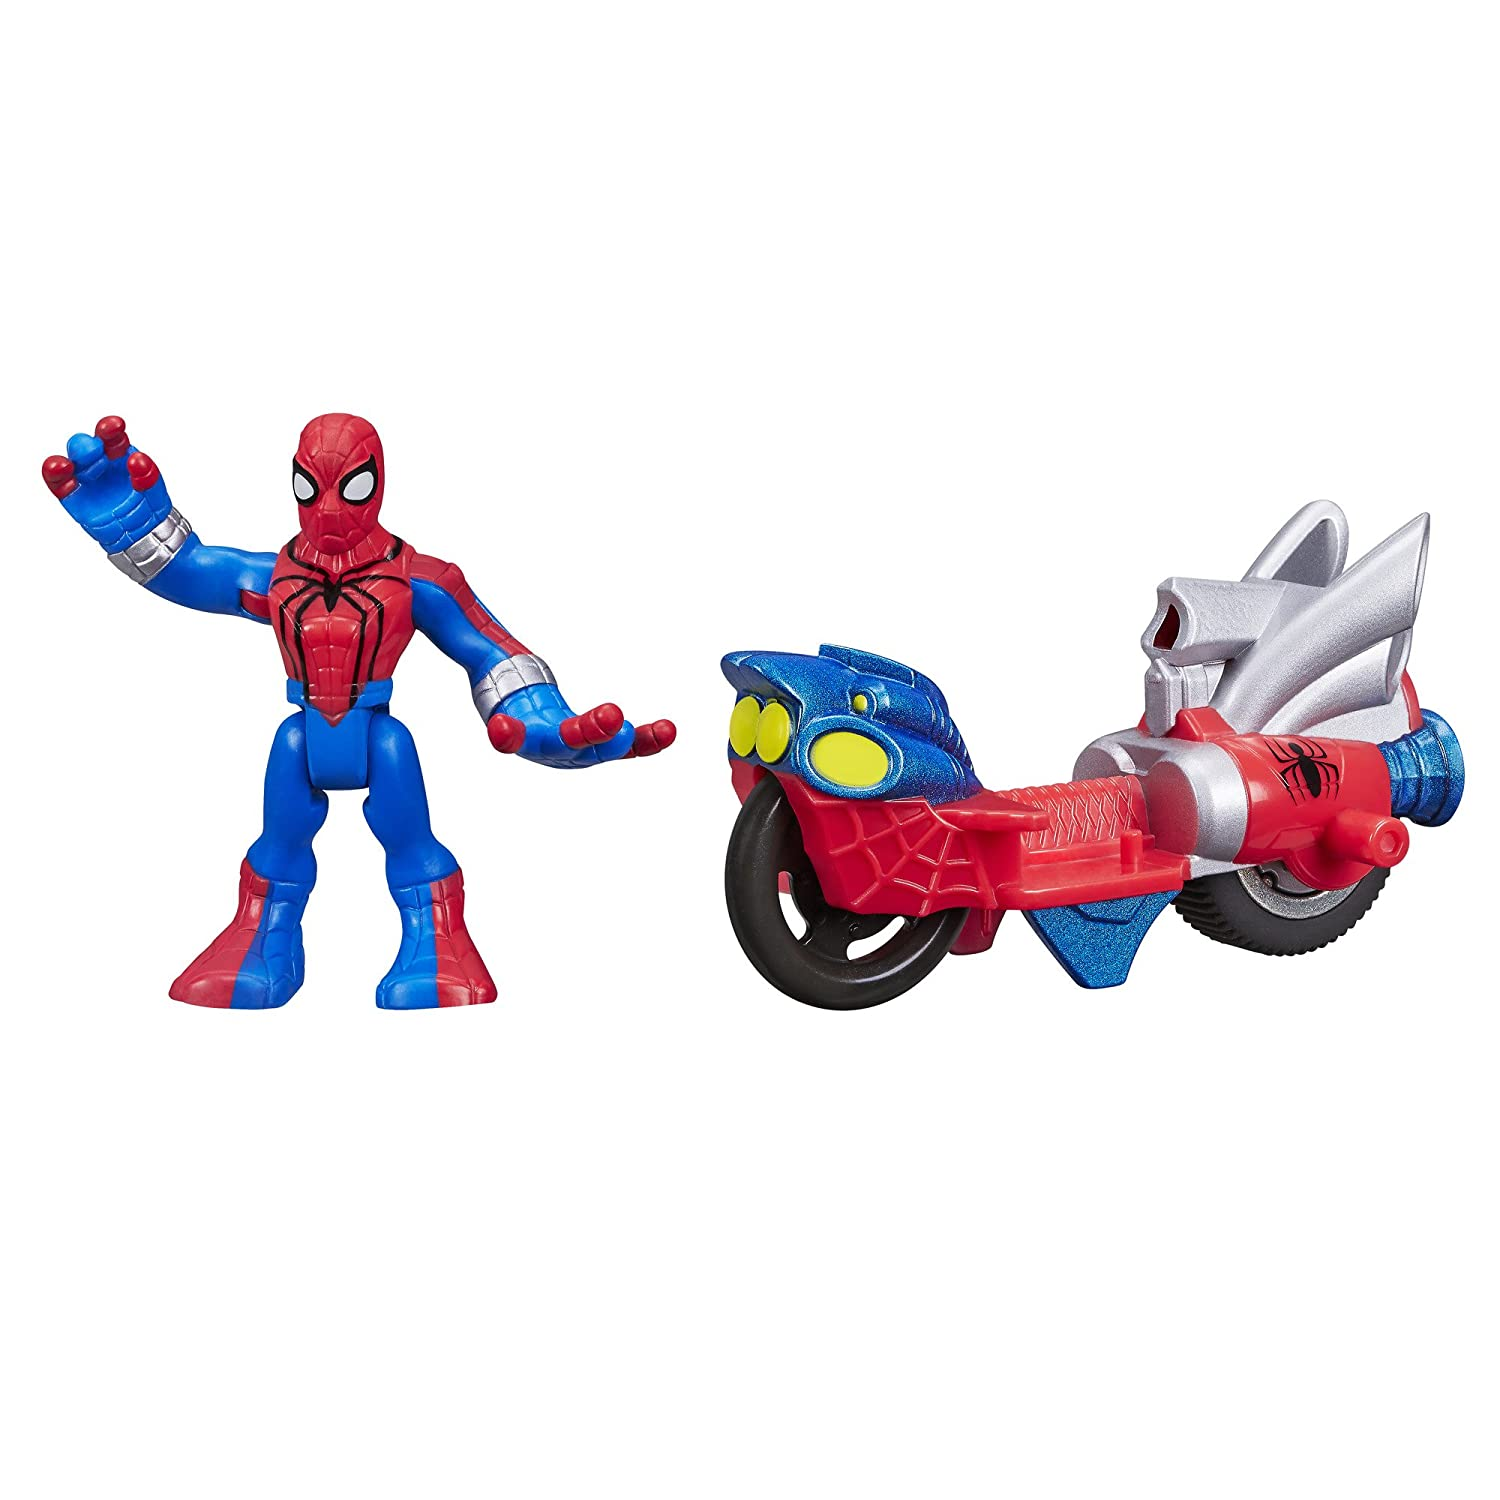 Playskool Heroes Marvel Super Hero Adventures Spider-Man Figure with Web Racer Vehicle Hasbro A7426000